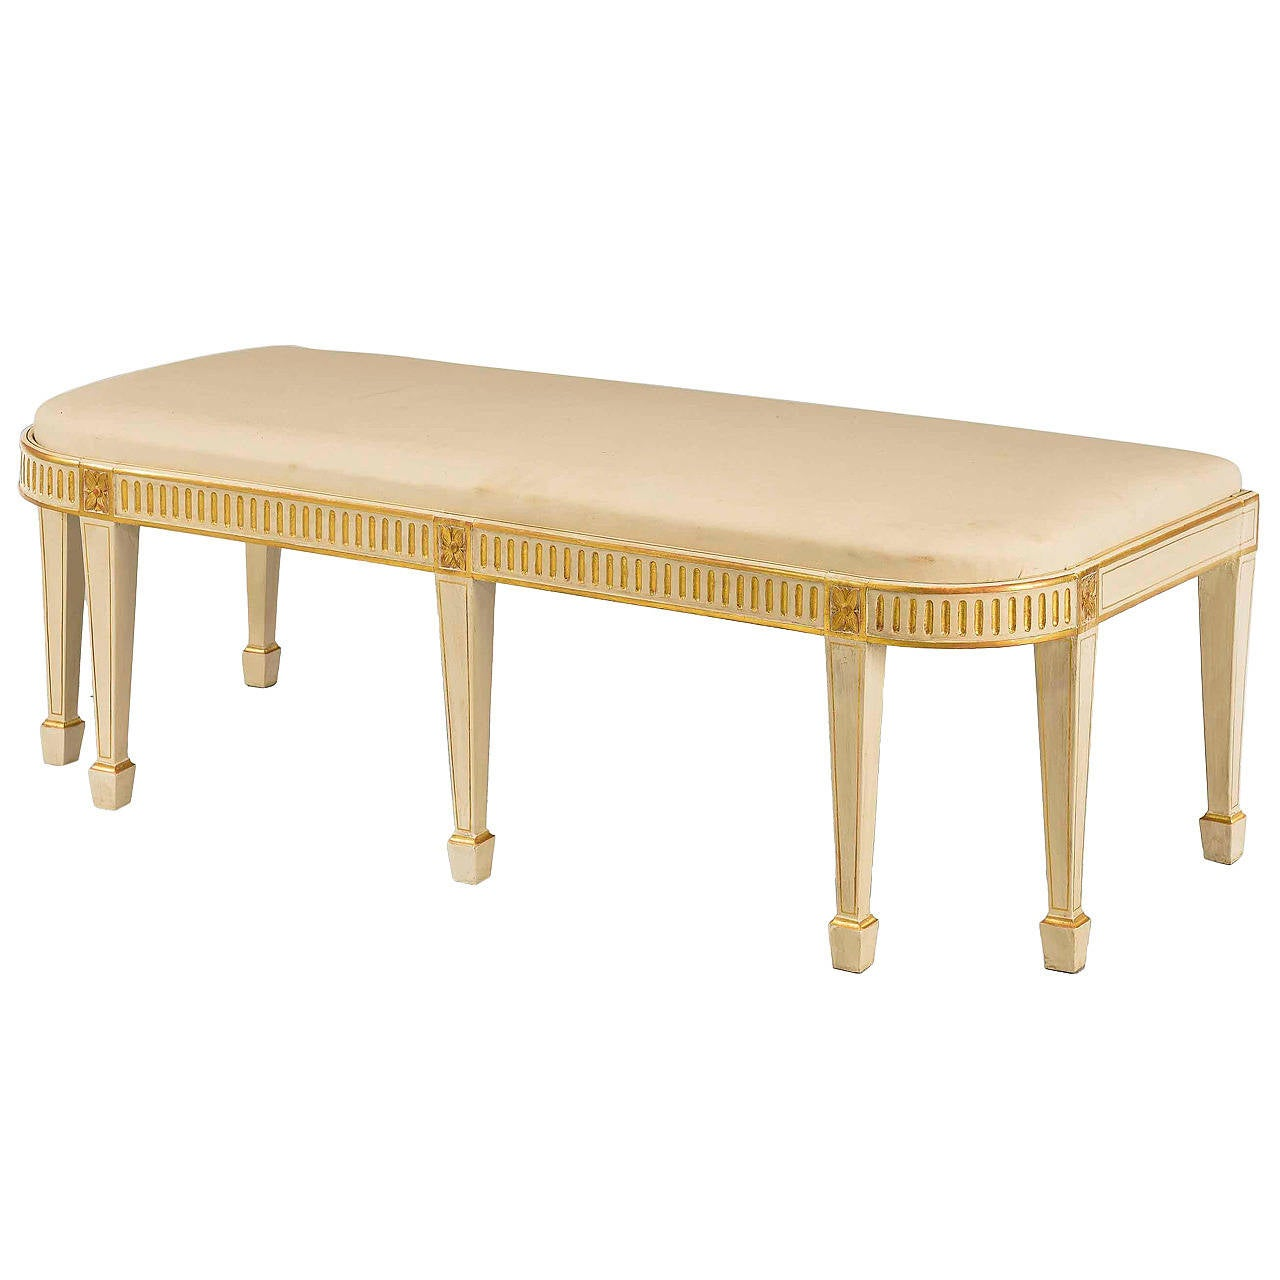 George III Period Parcel Gilt Window Seat For Sale at 1stdibs